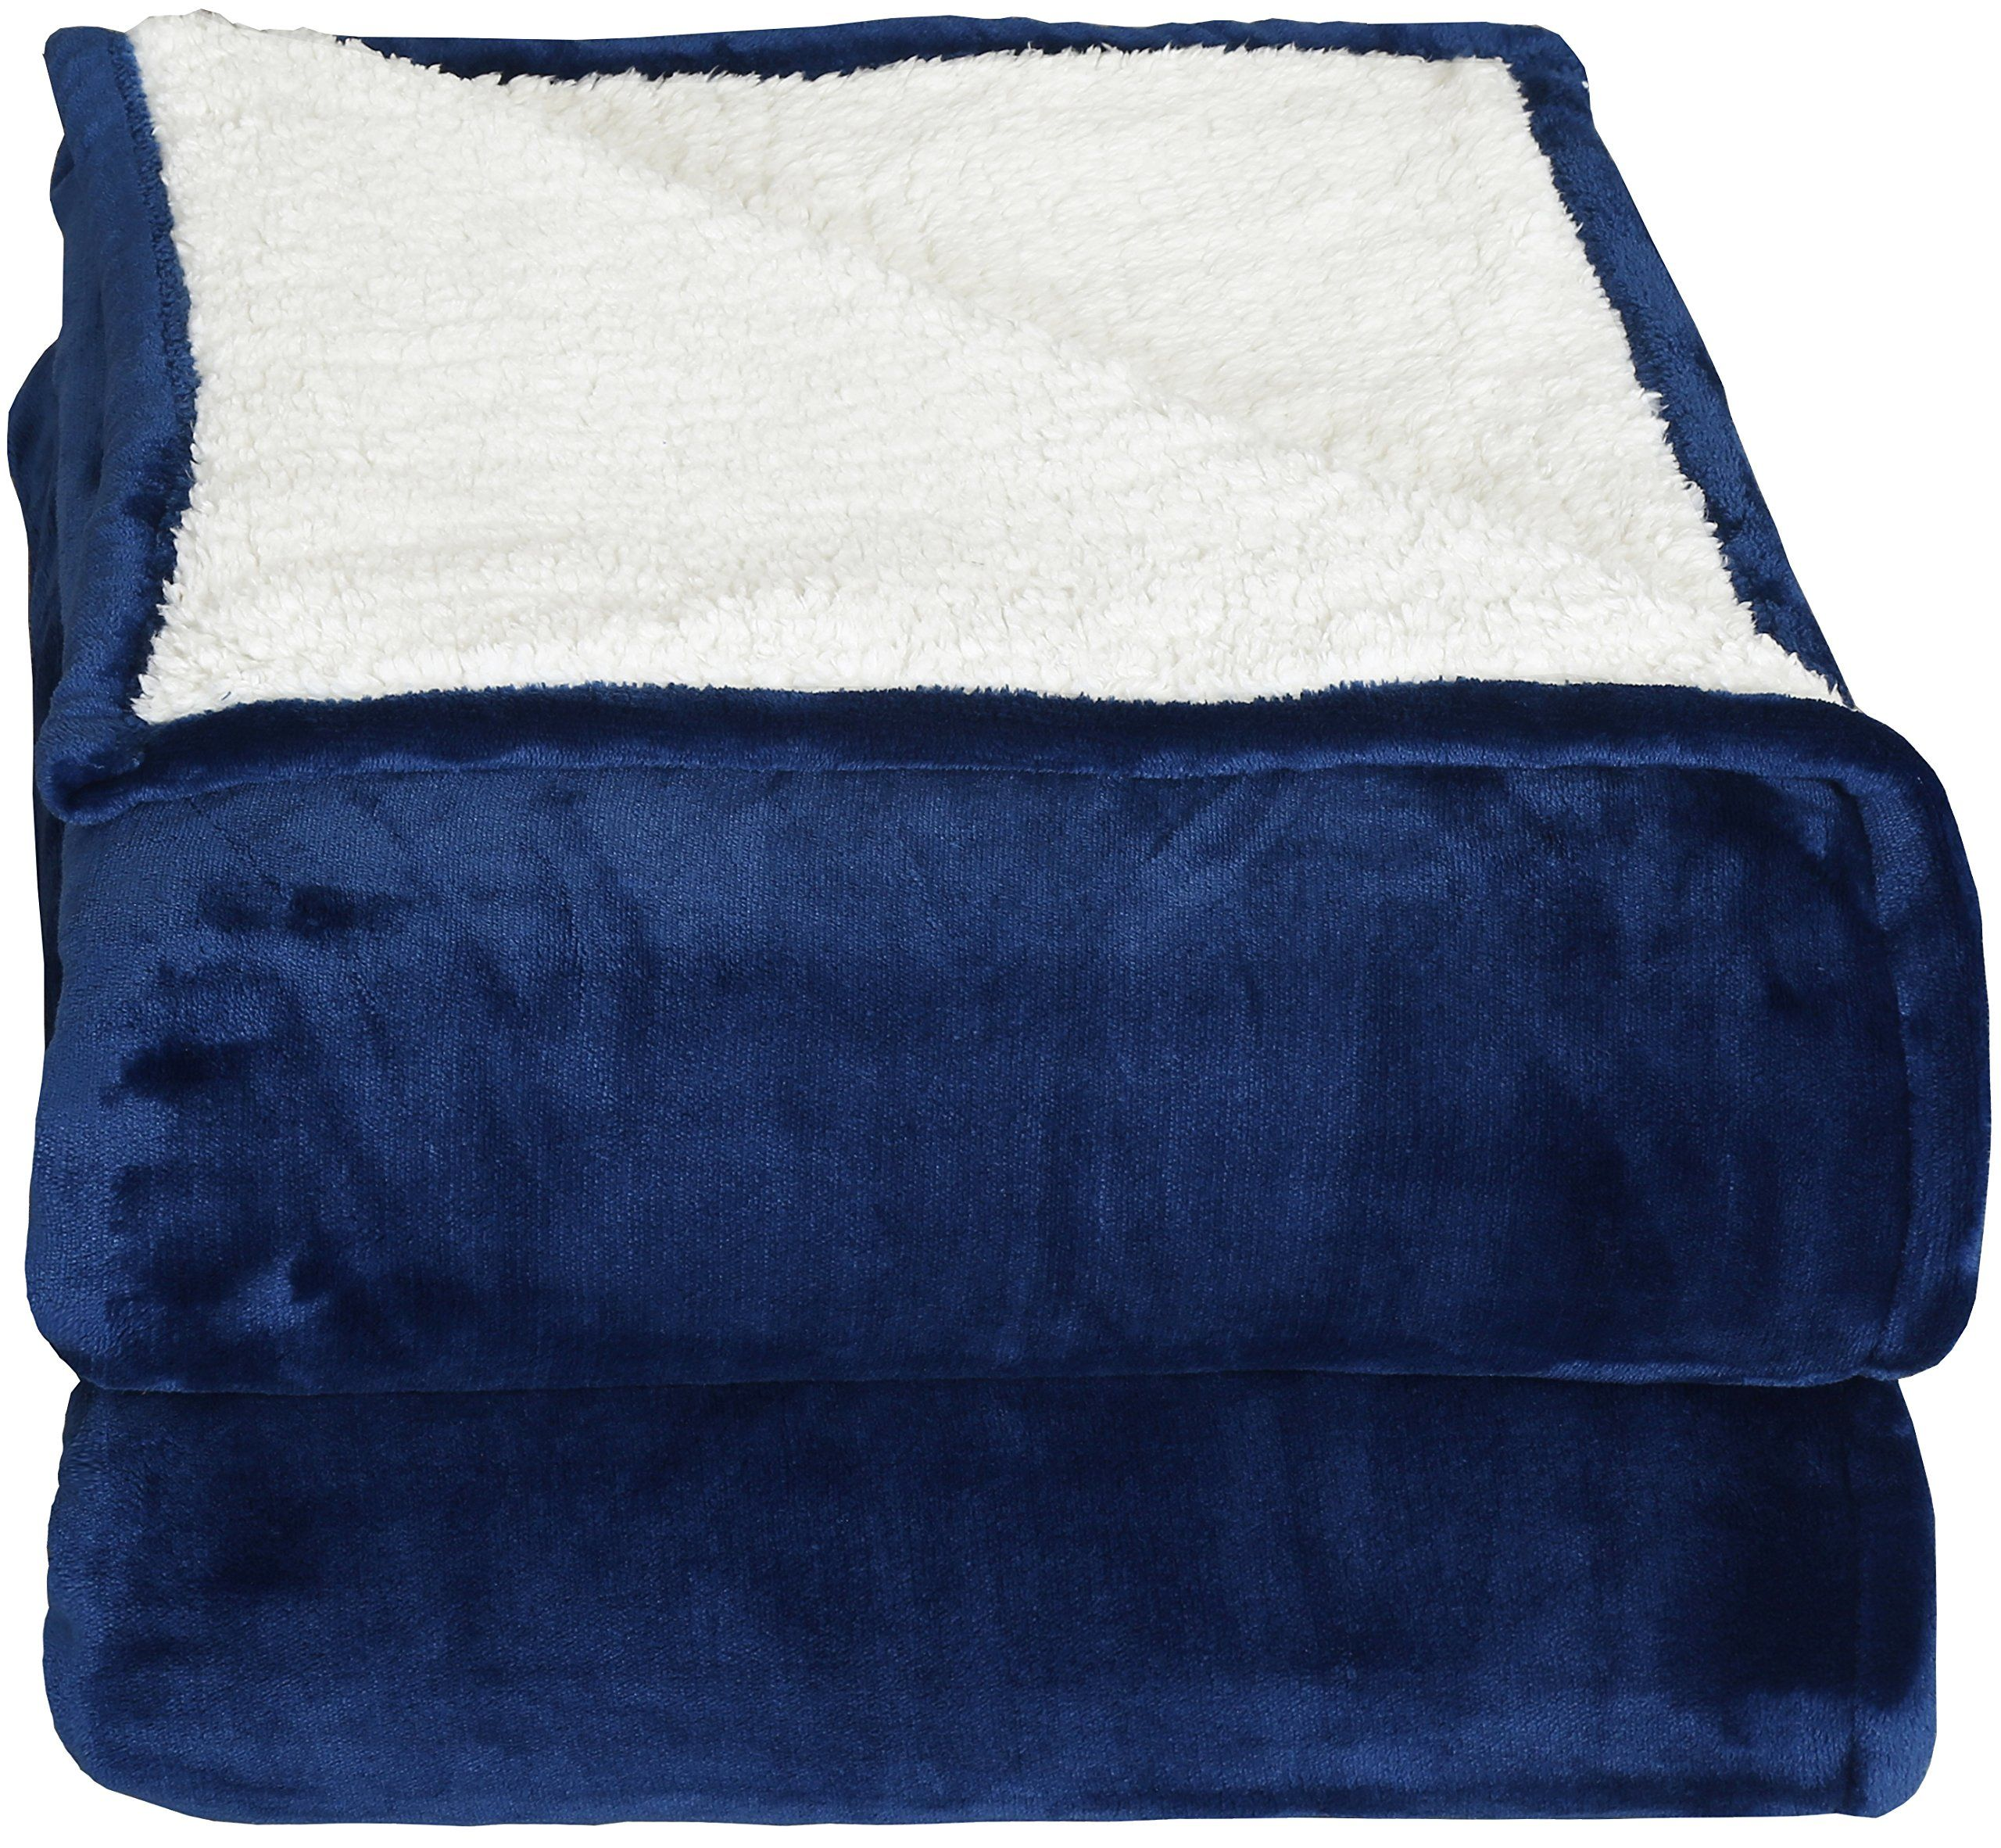 Sherpa Flannel Fleece Reversible Blankets Queen Navy Extra Soft Brush Fabric Super Warm Bed Blanket Lightweight Cozy Couch Easy Care By